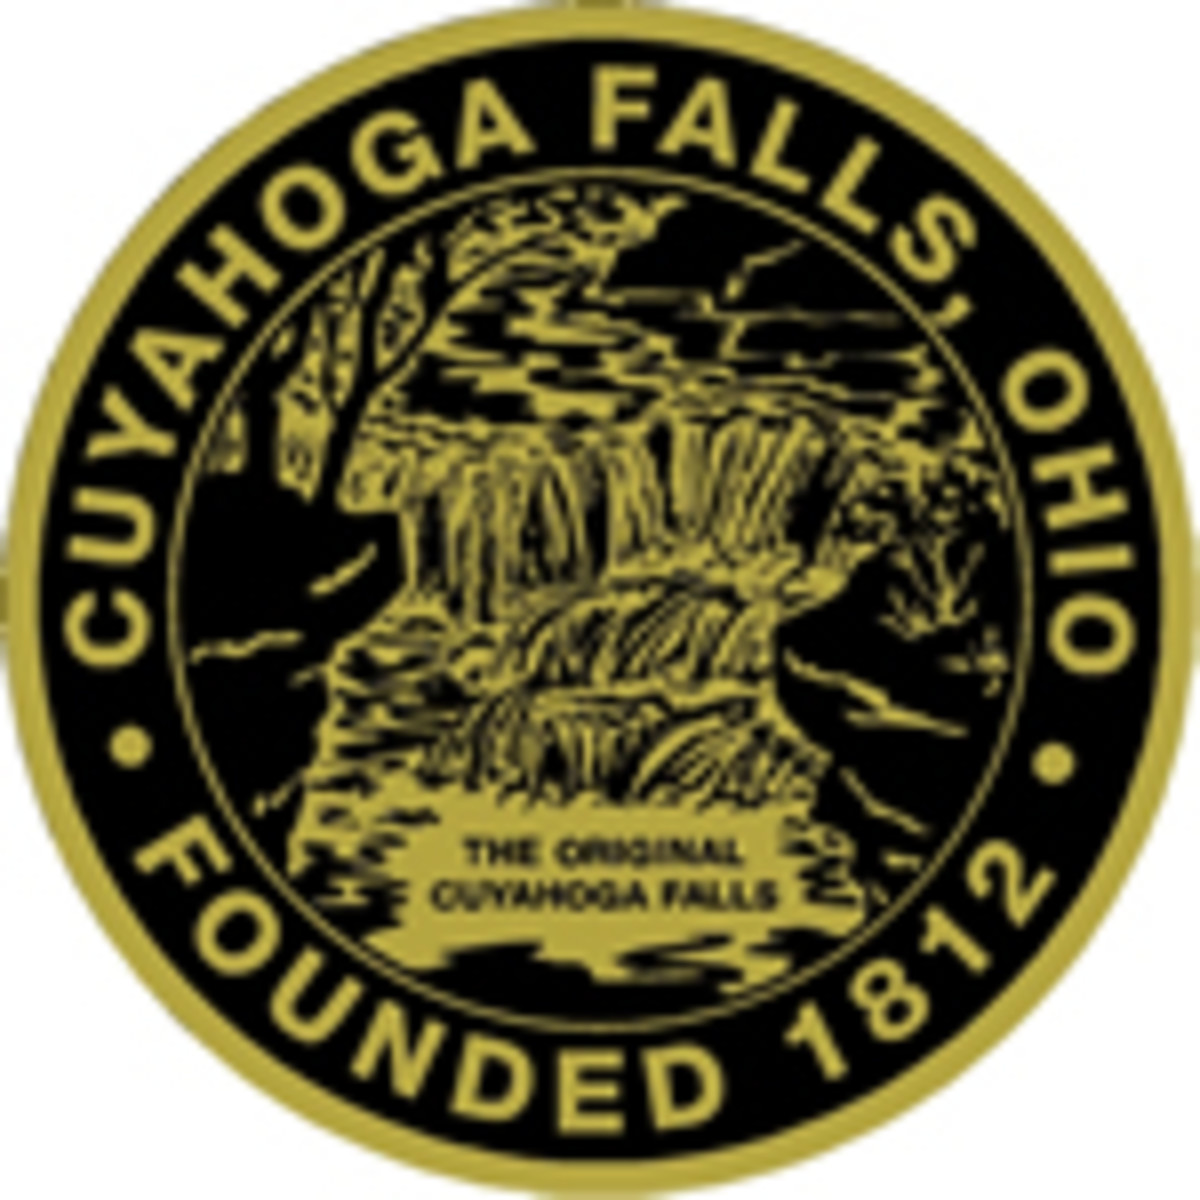 The Great Seal of the city of Cuyahoga Falls, designed by one of my classmates in 1972.